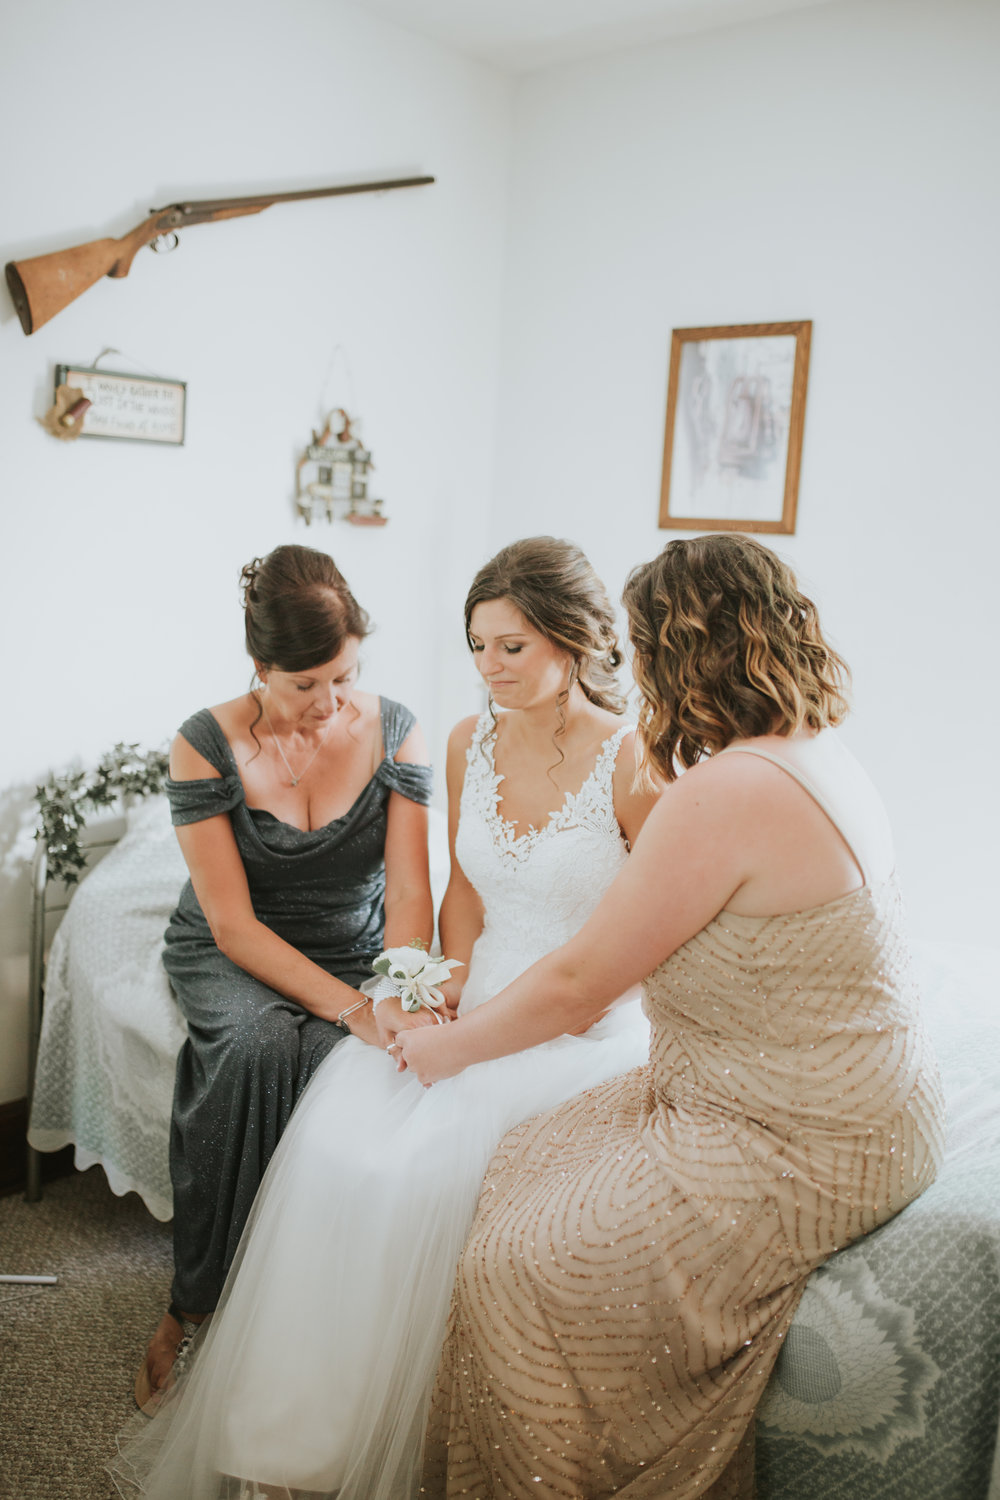 golden-eagle-sparrow-and-gold-photography-el-paso-wedding-photographer-20